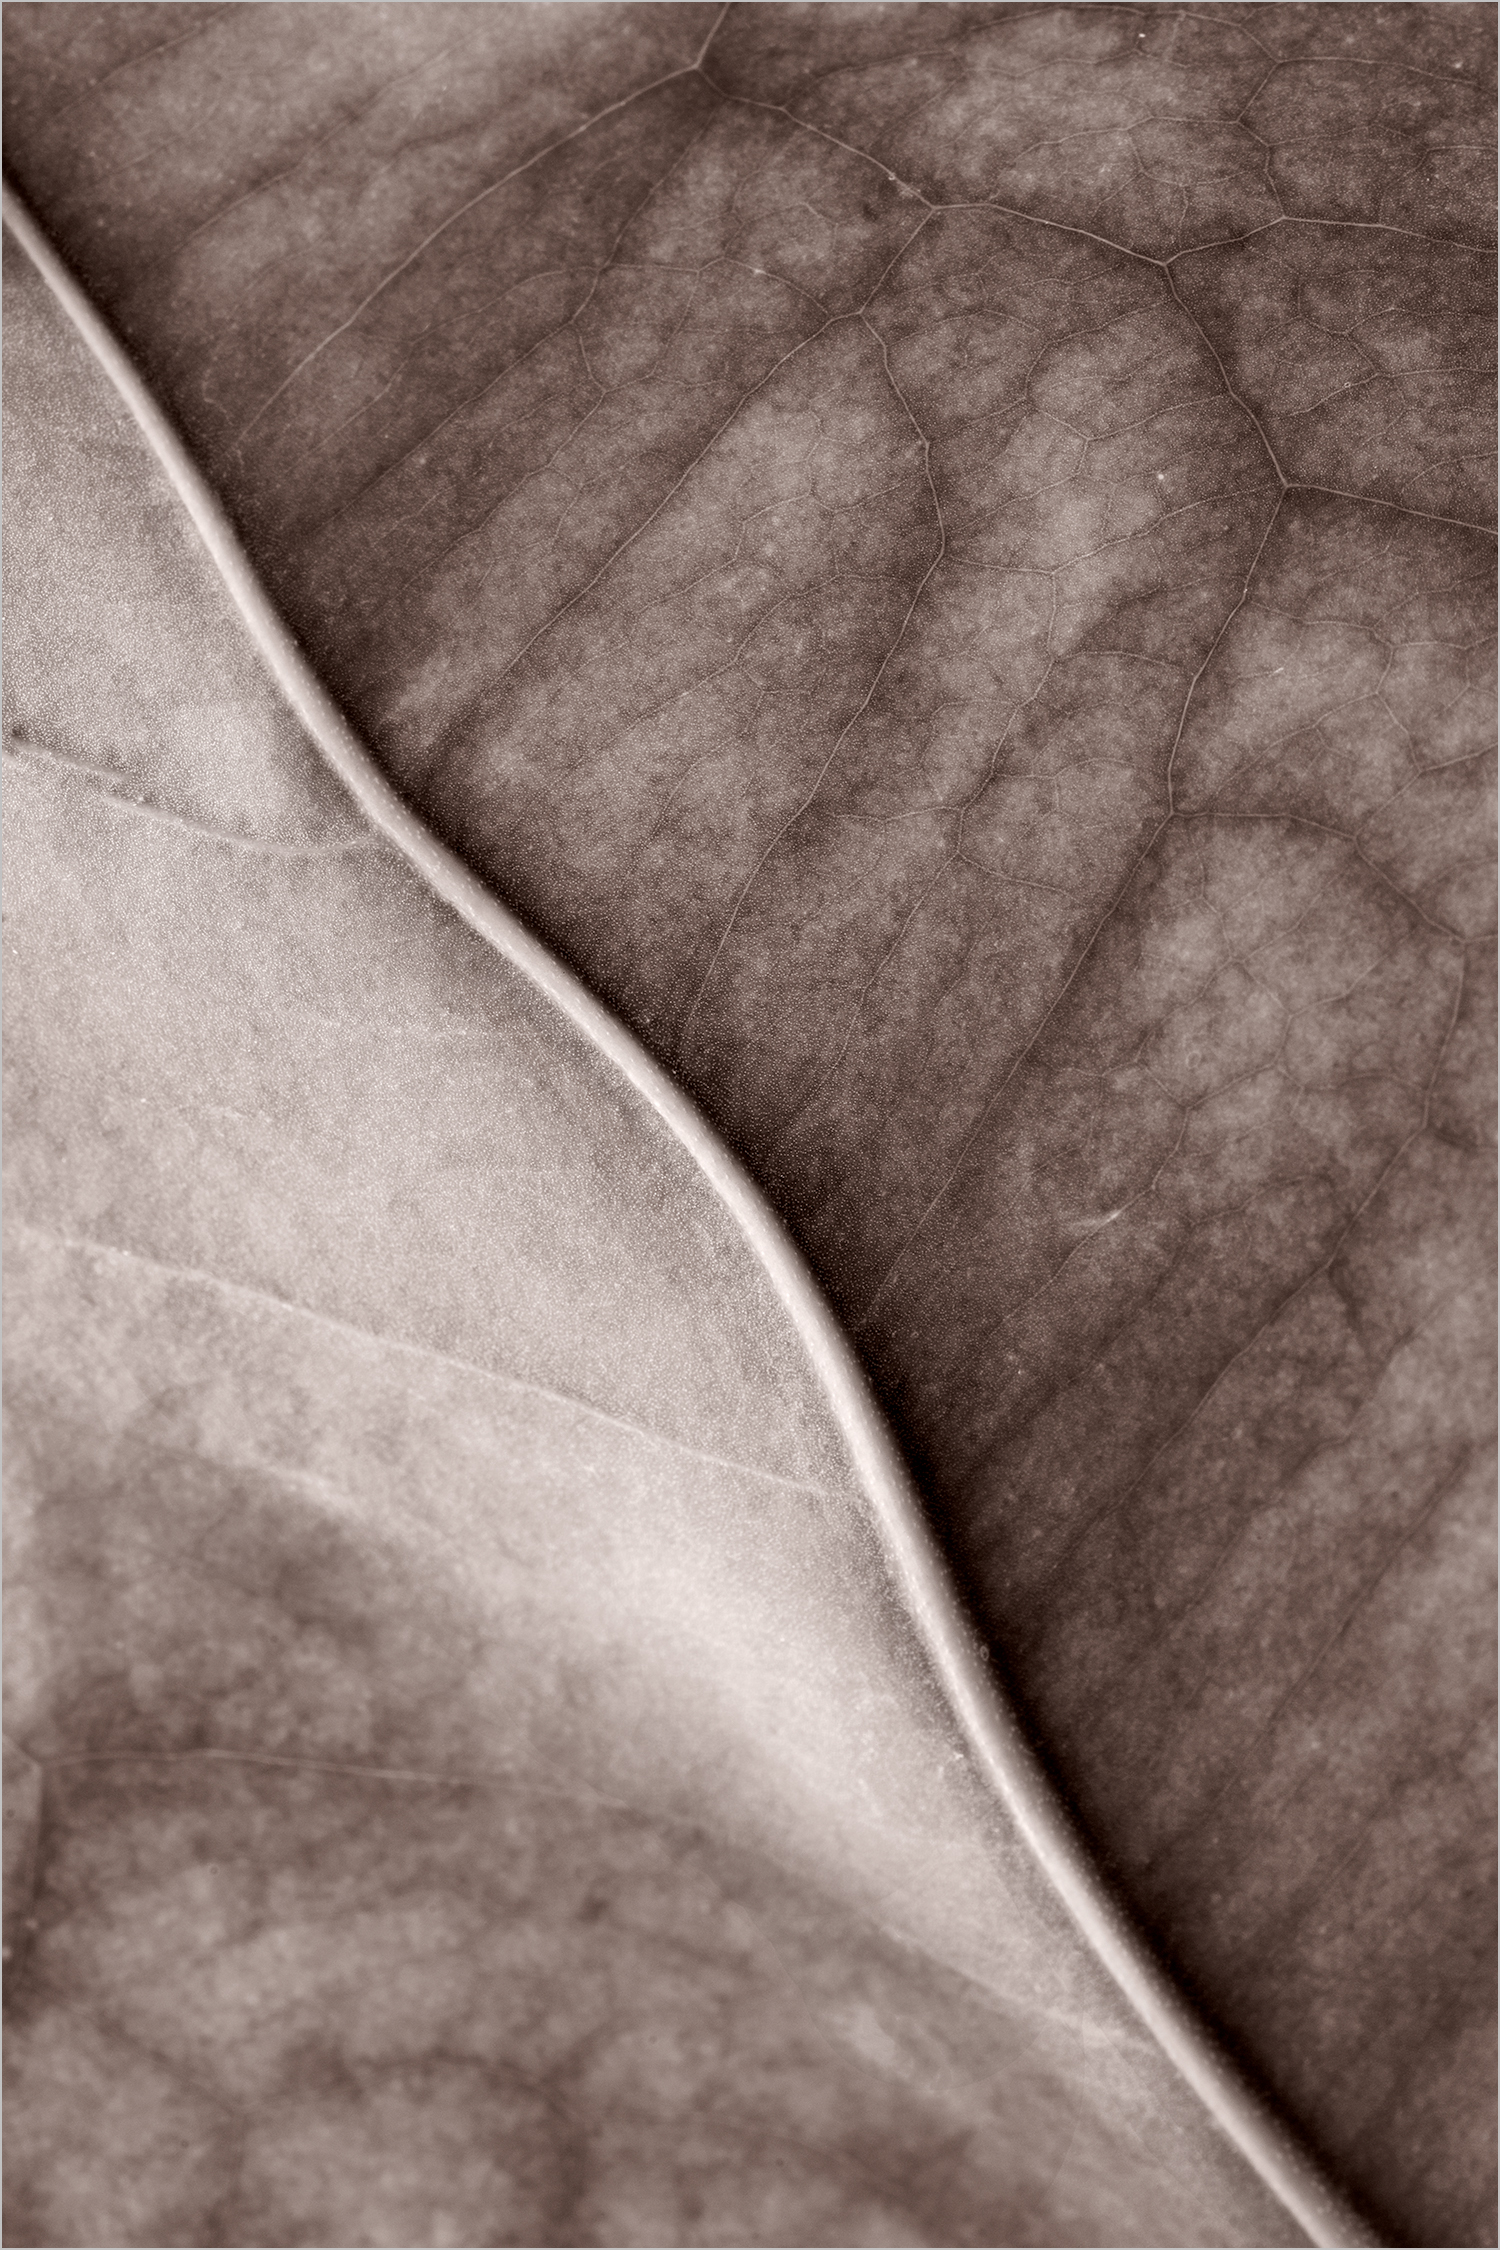 Leaf Close Up #4 Toned © Howard Grill